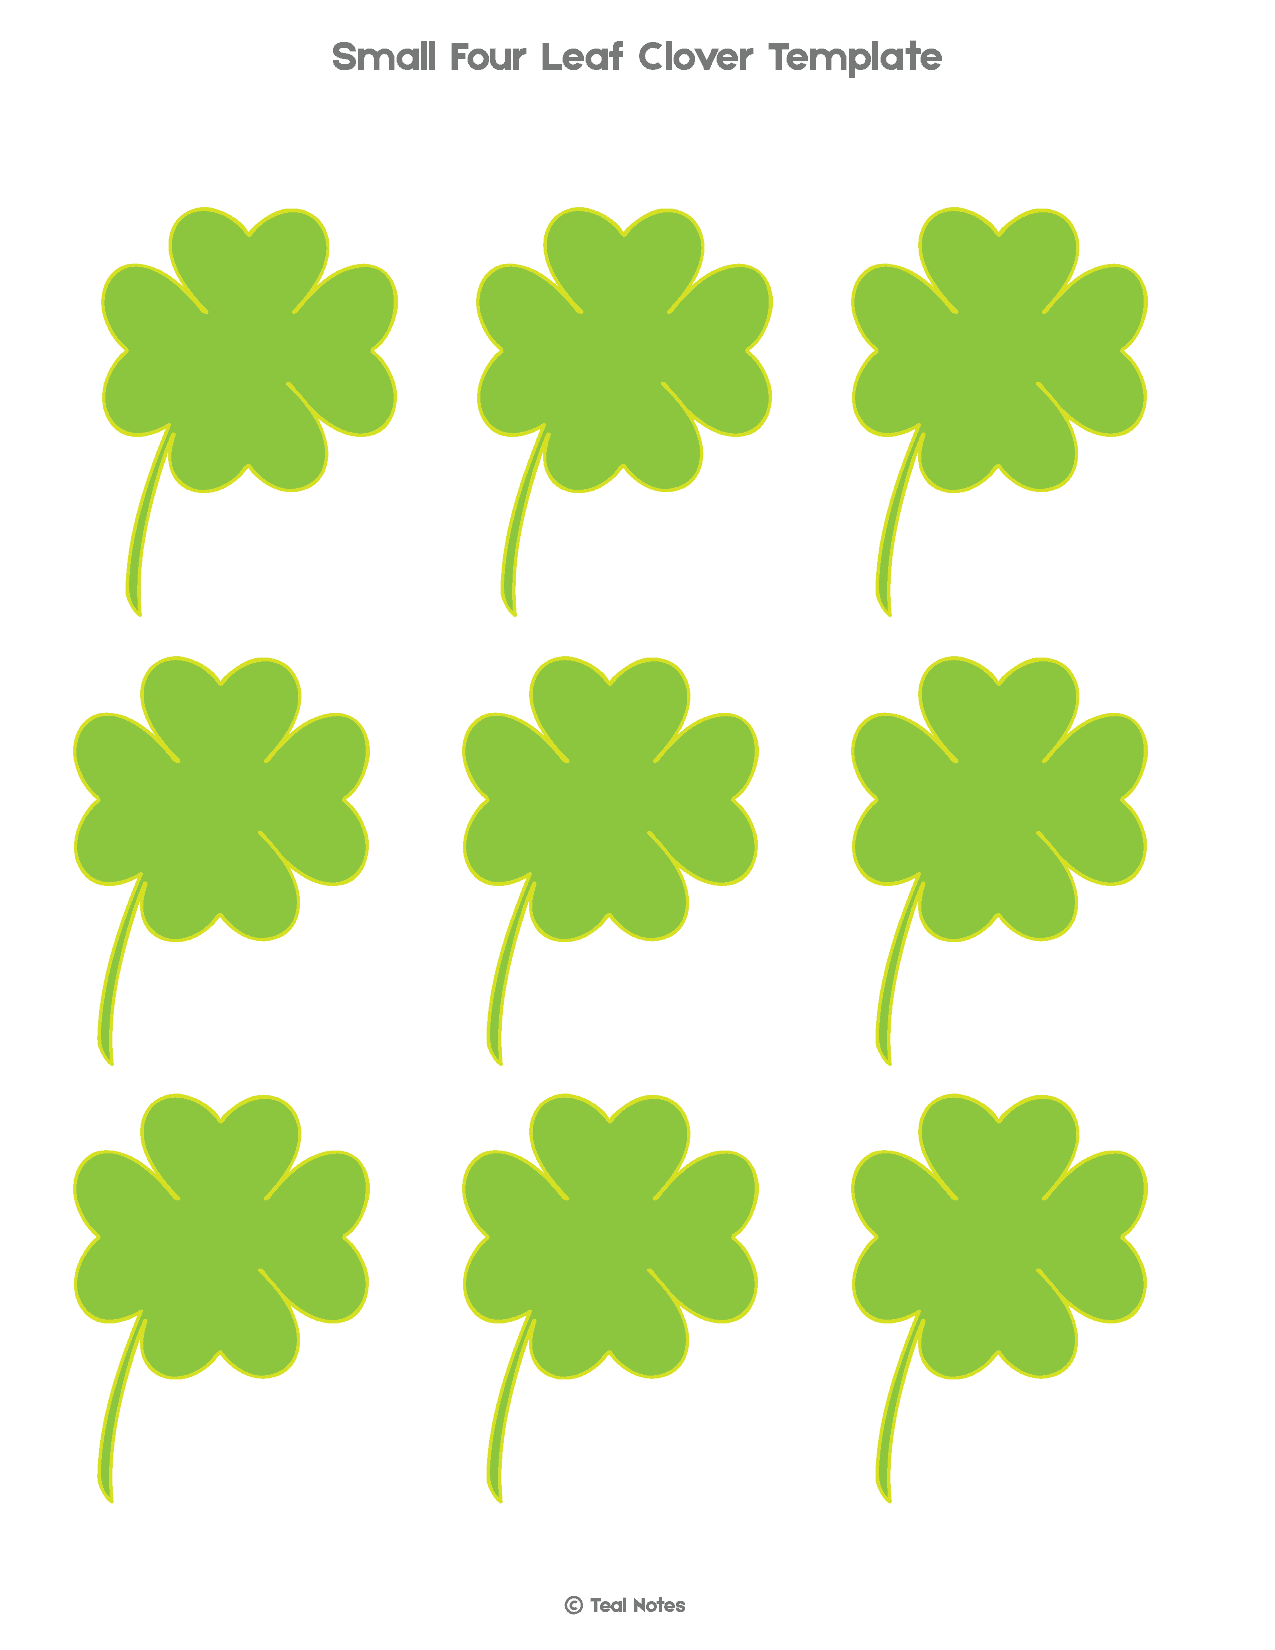 graphic relating to Printable Four Leaf Clovers identified as 4 Leaf Clover Template: Cost-free Shamrock Template Printable